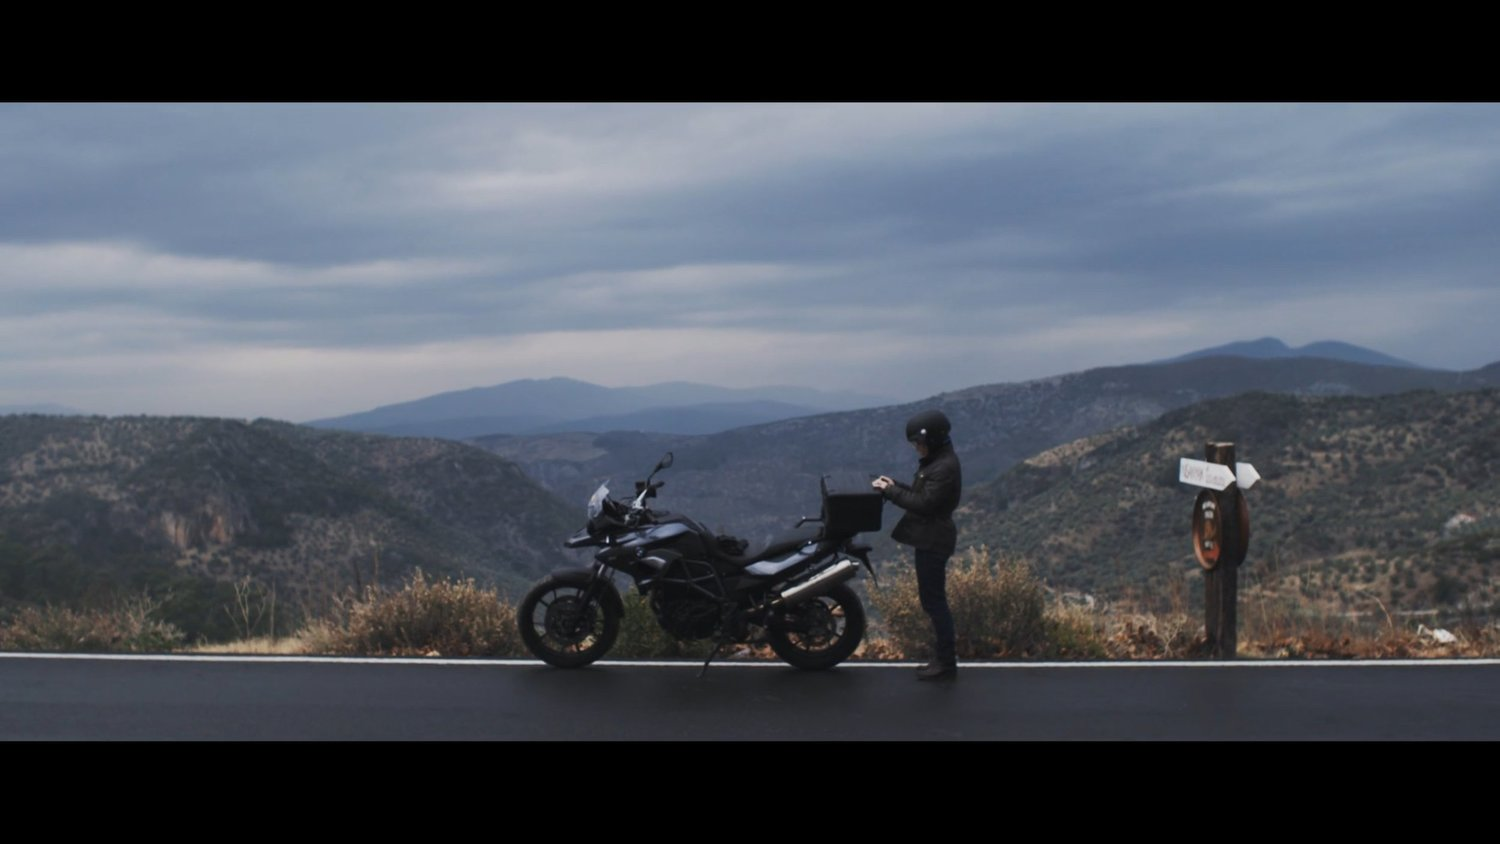 BMW Art Journey - Abigail Reynolds #2 - Branded Content